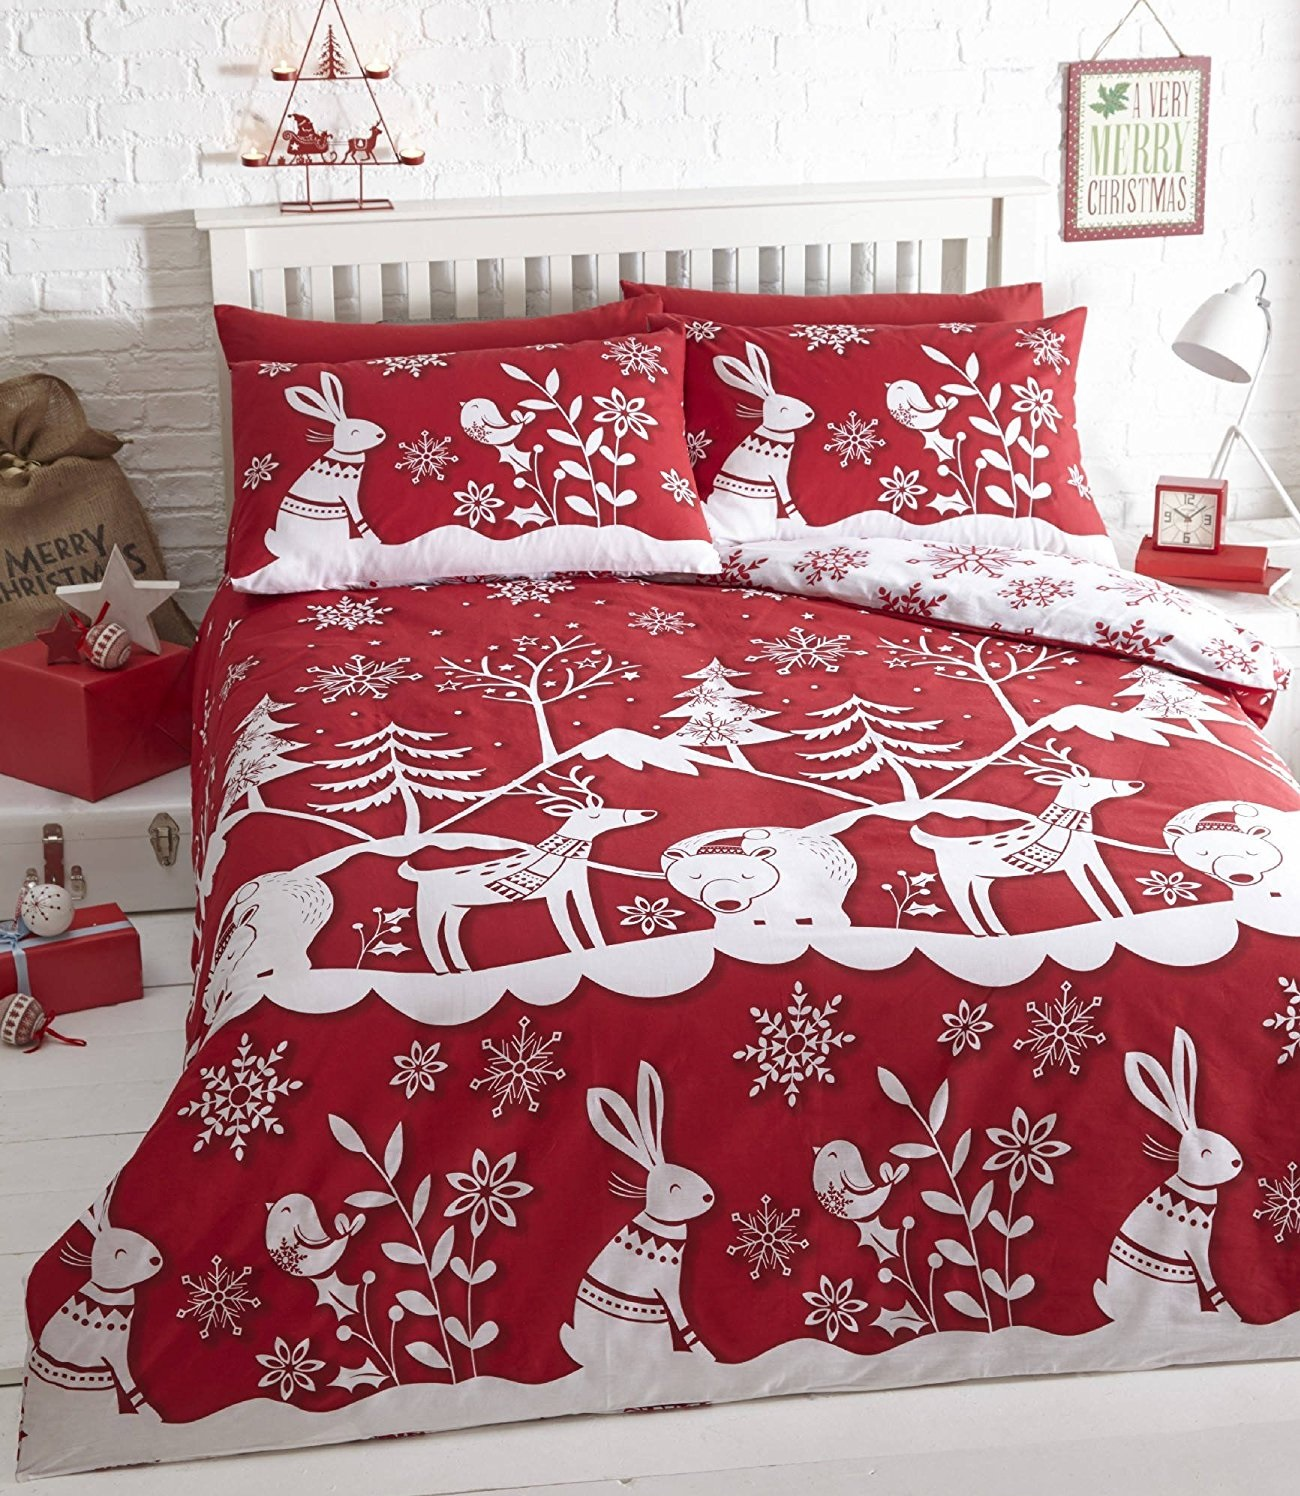 ebay uk christmas chair covers rocking pads and cushions father duvet cover set tree santa snowman angels